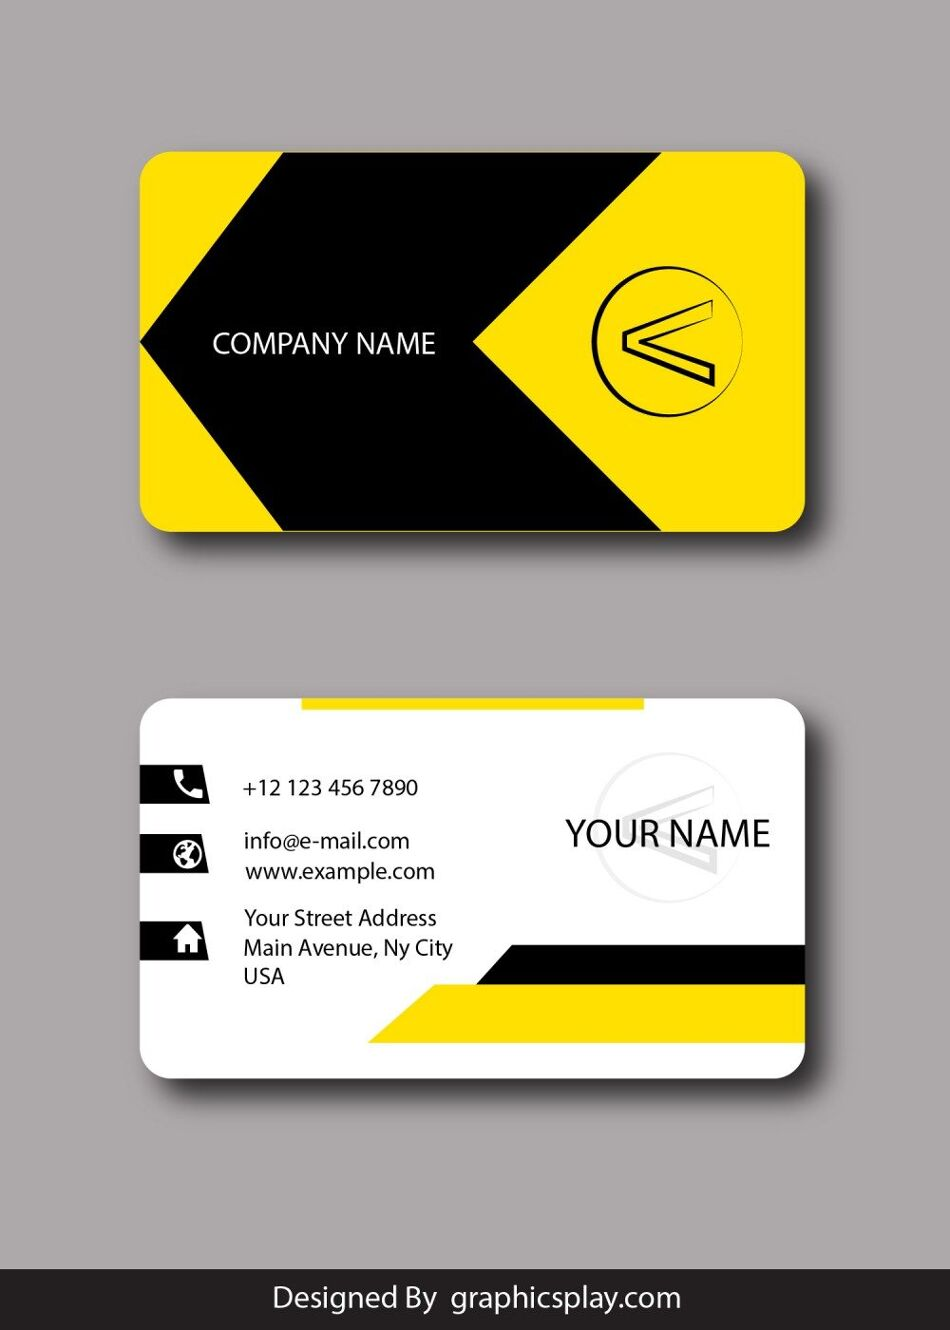 Business Card Design Vector Template - ID 1796 1